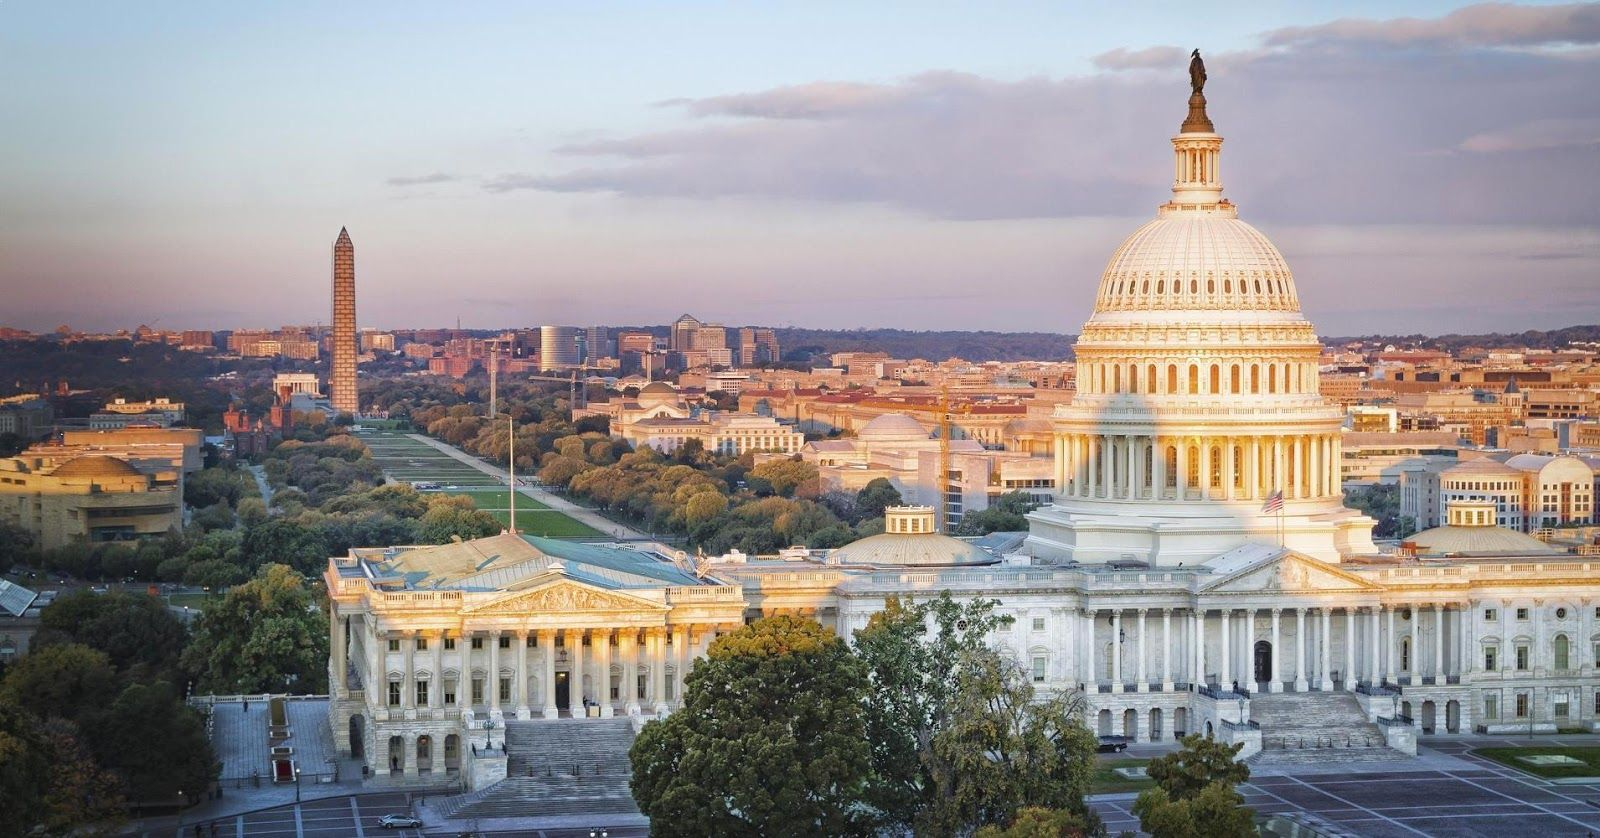 The 8 Greatest and Beautiful Place To Take Pictures in Washington DC